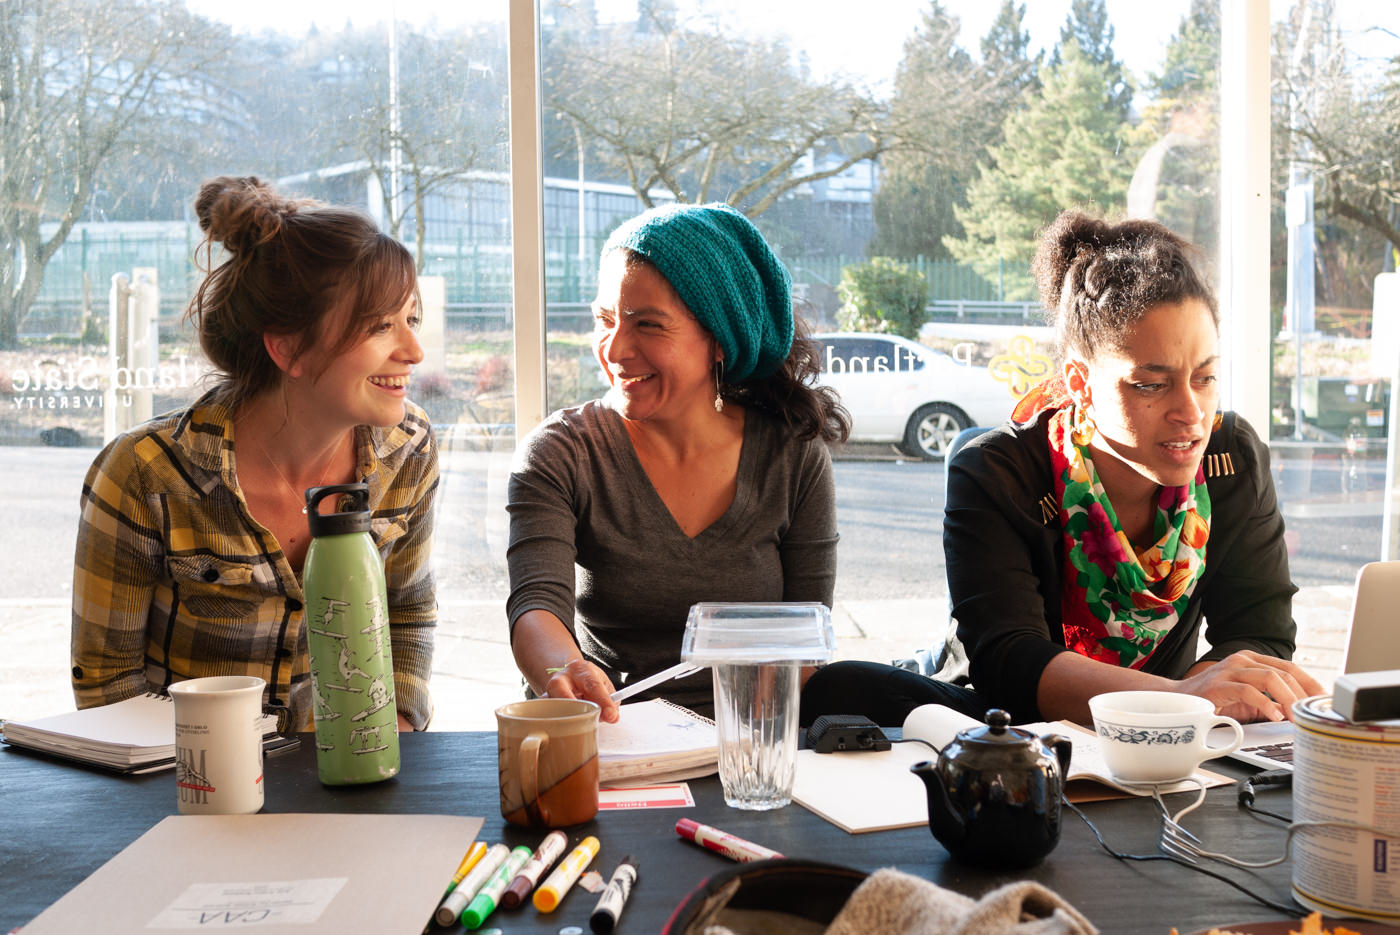 three women at a school for artistic activism workshop